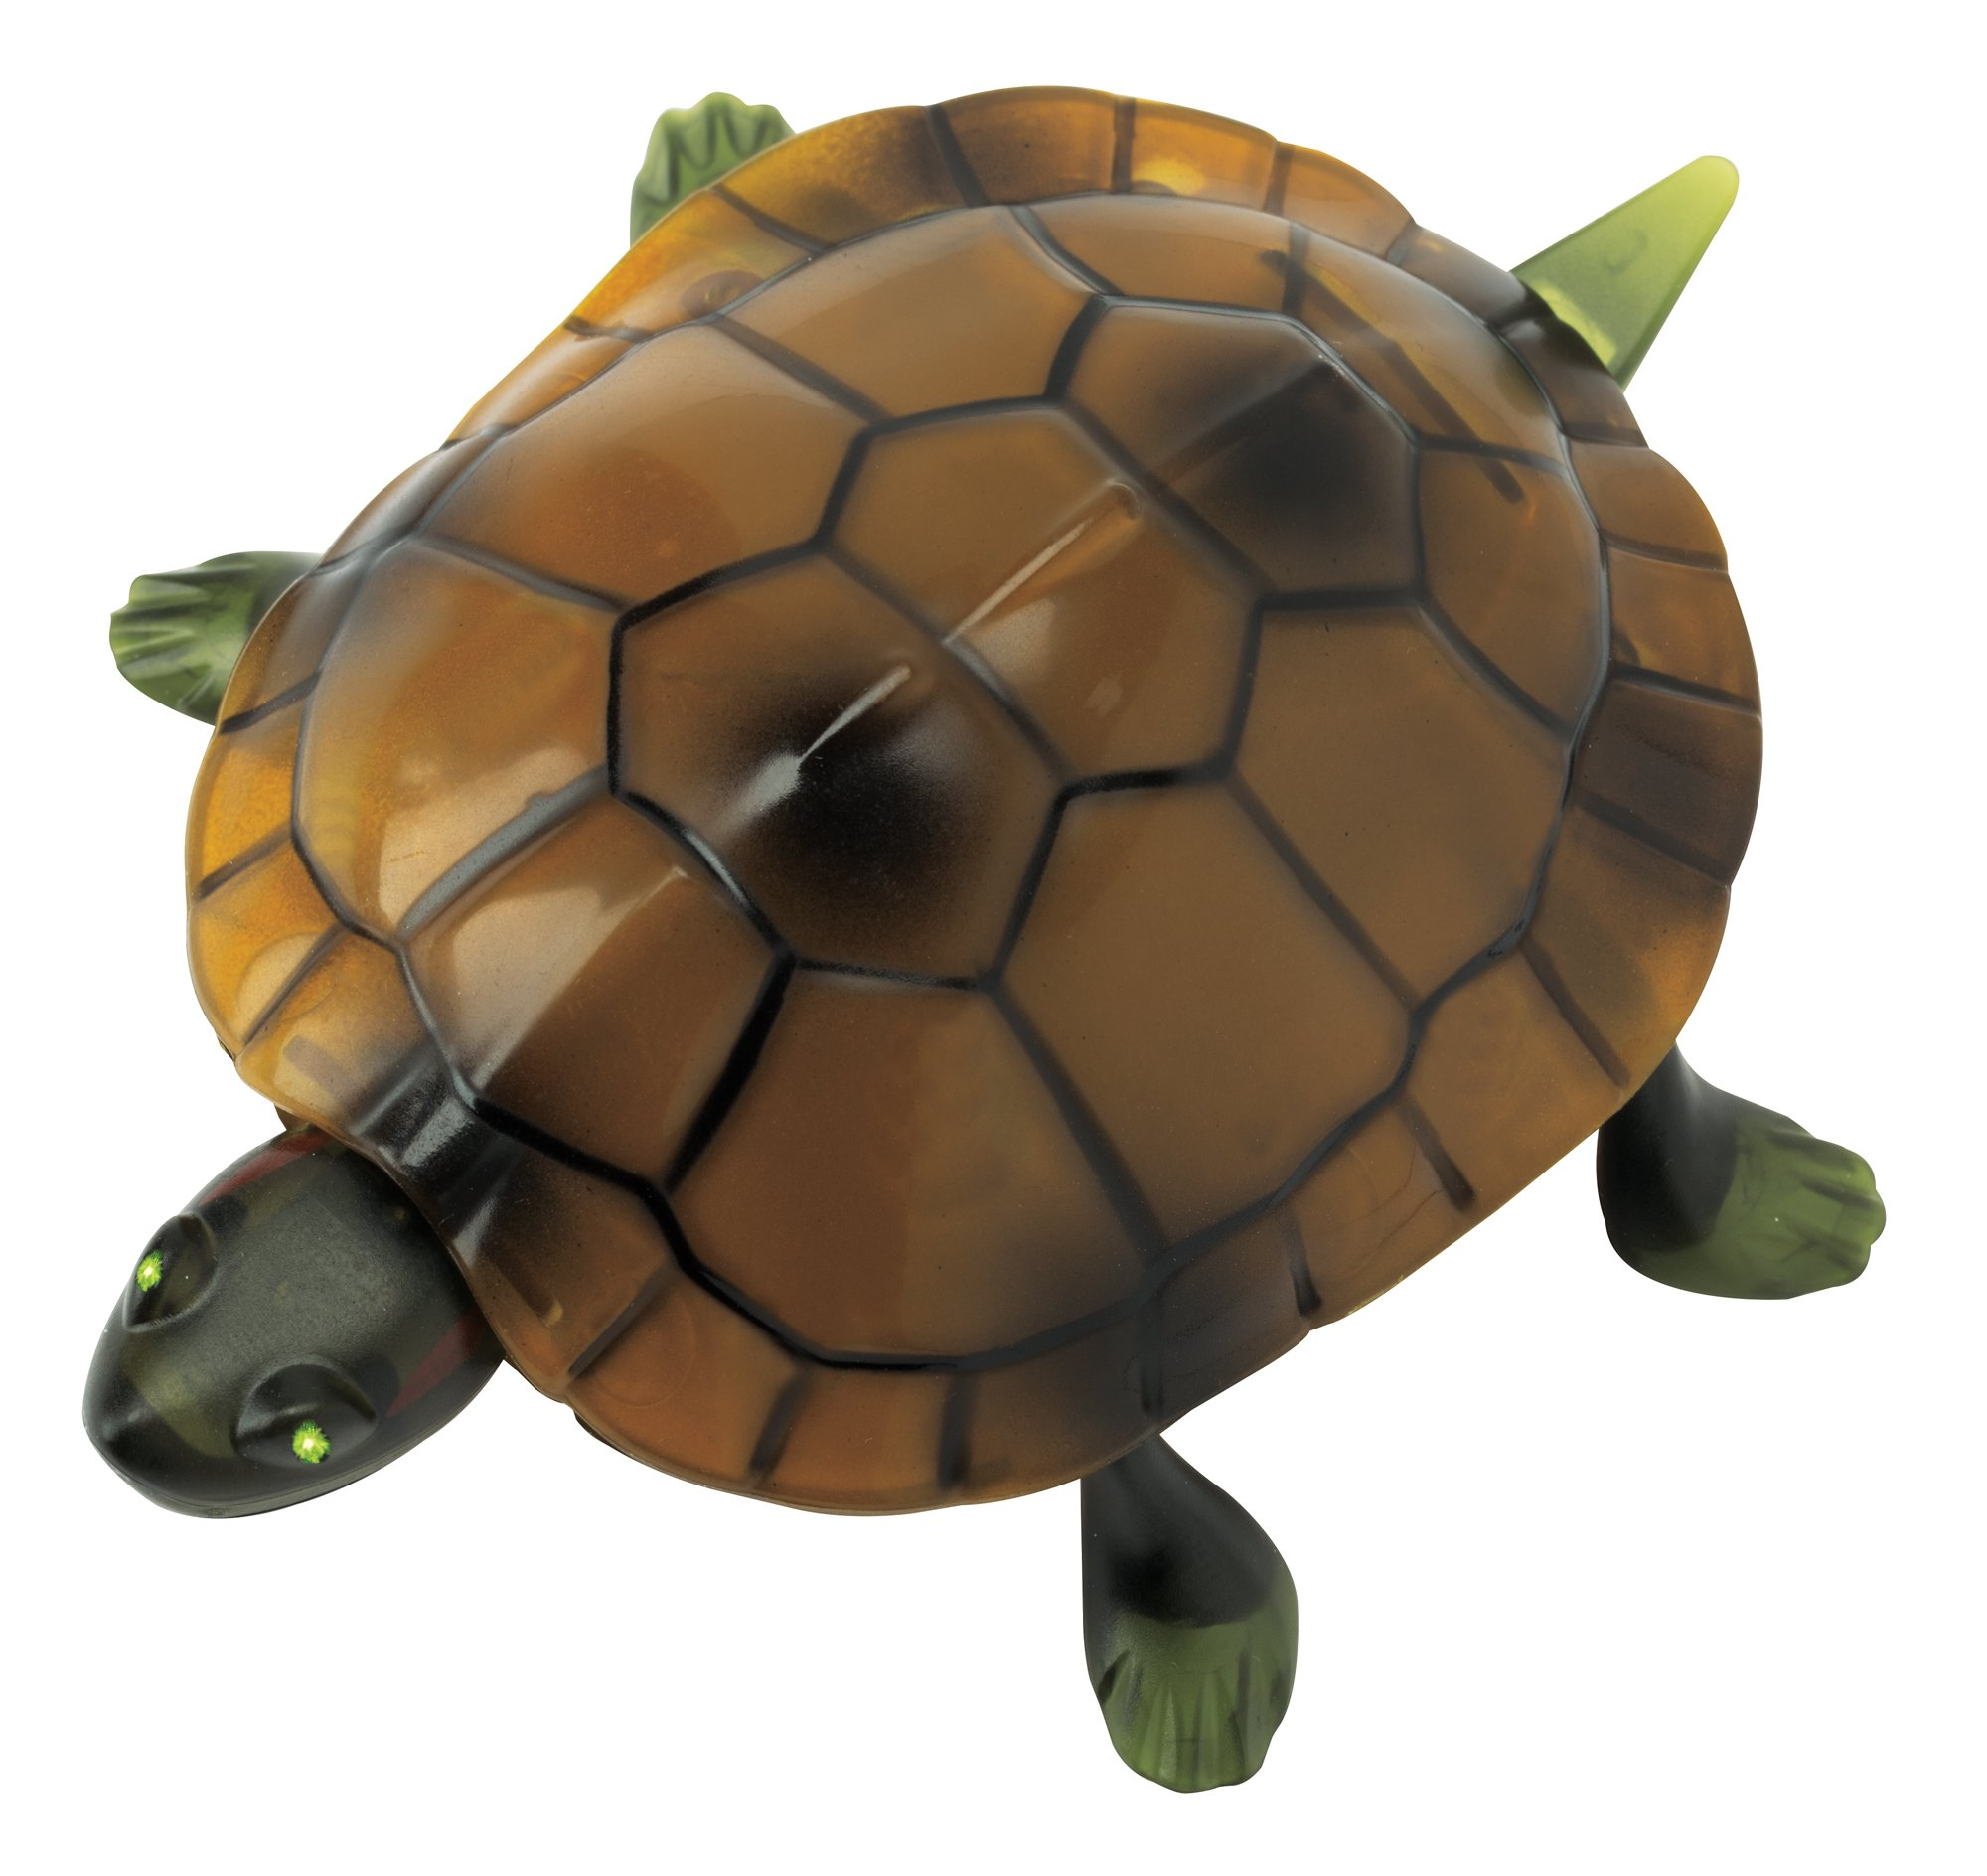 The Paragon Remote Control Turtle - RC Animal Toy, Turtle Toy for Kids and Adults by The Paragon (Image #5)